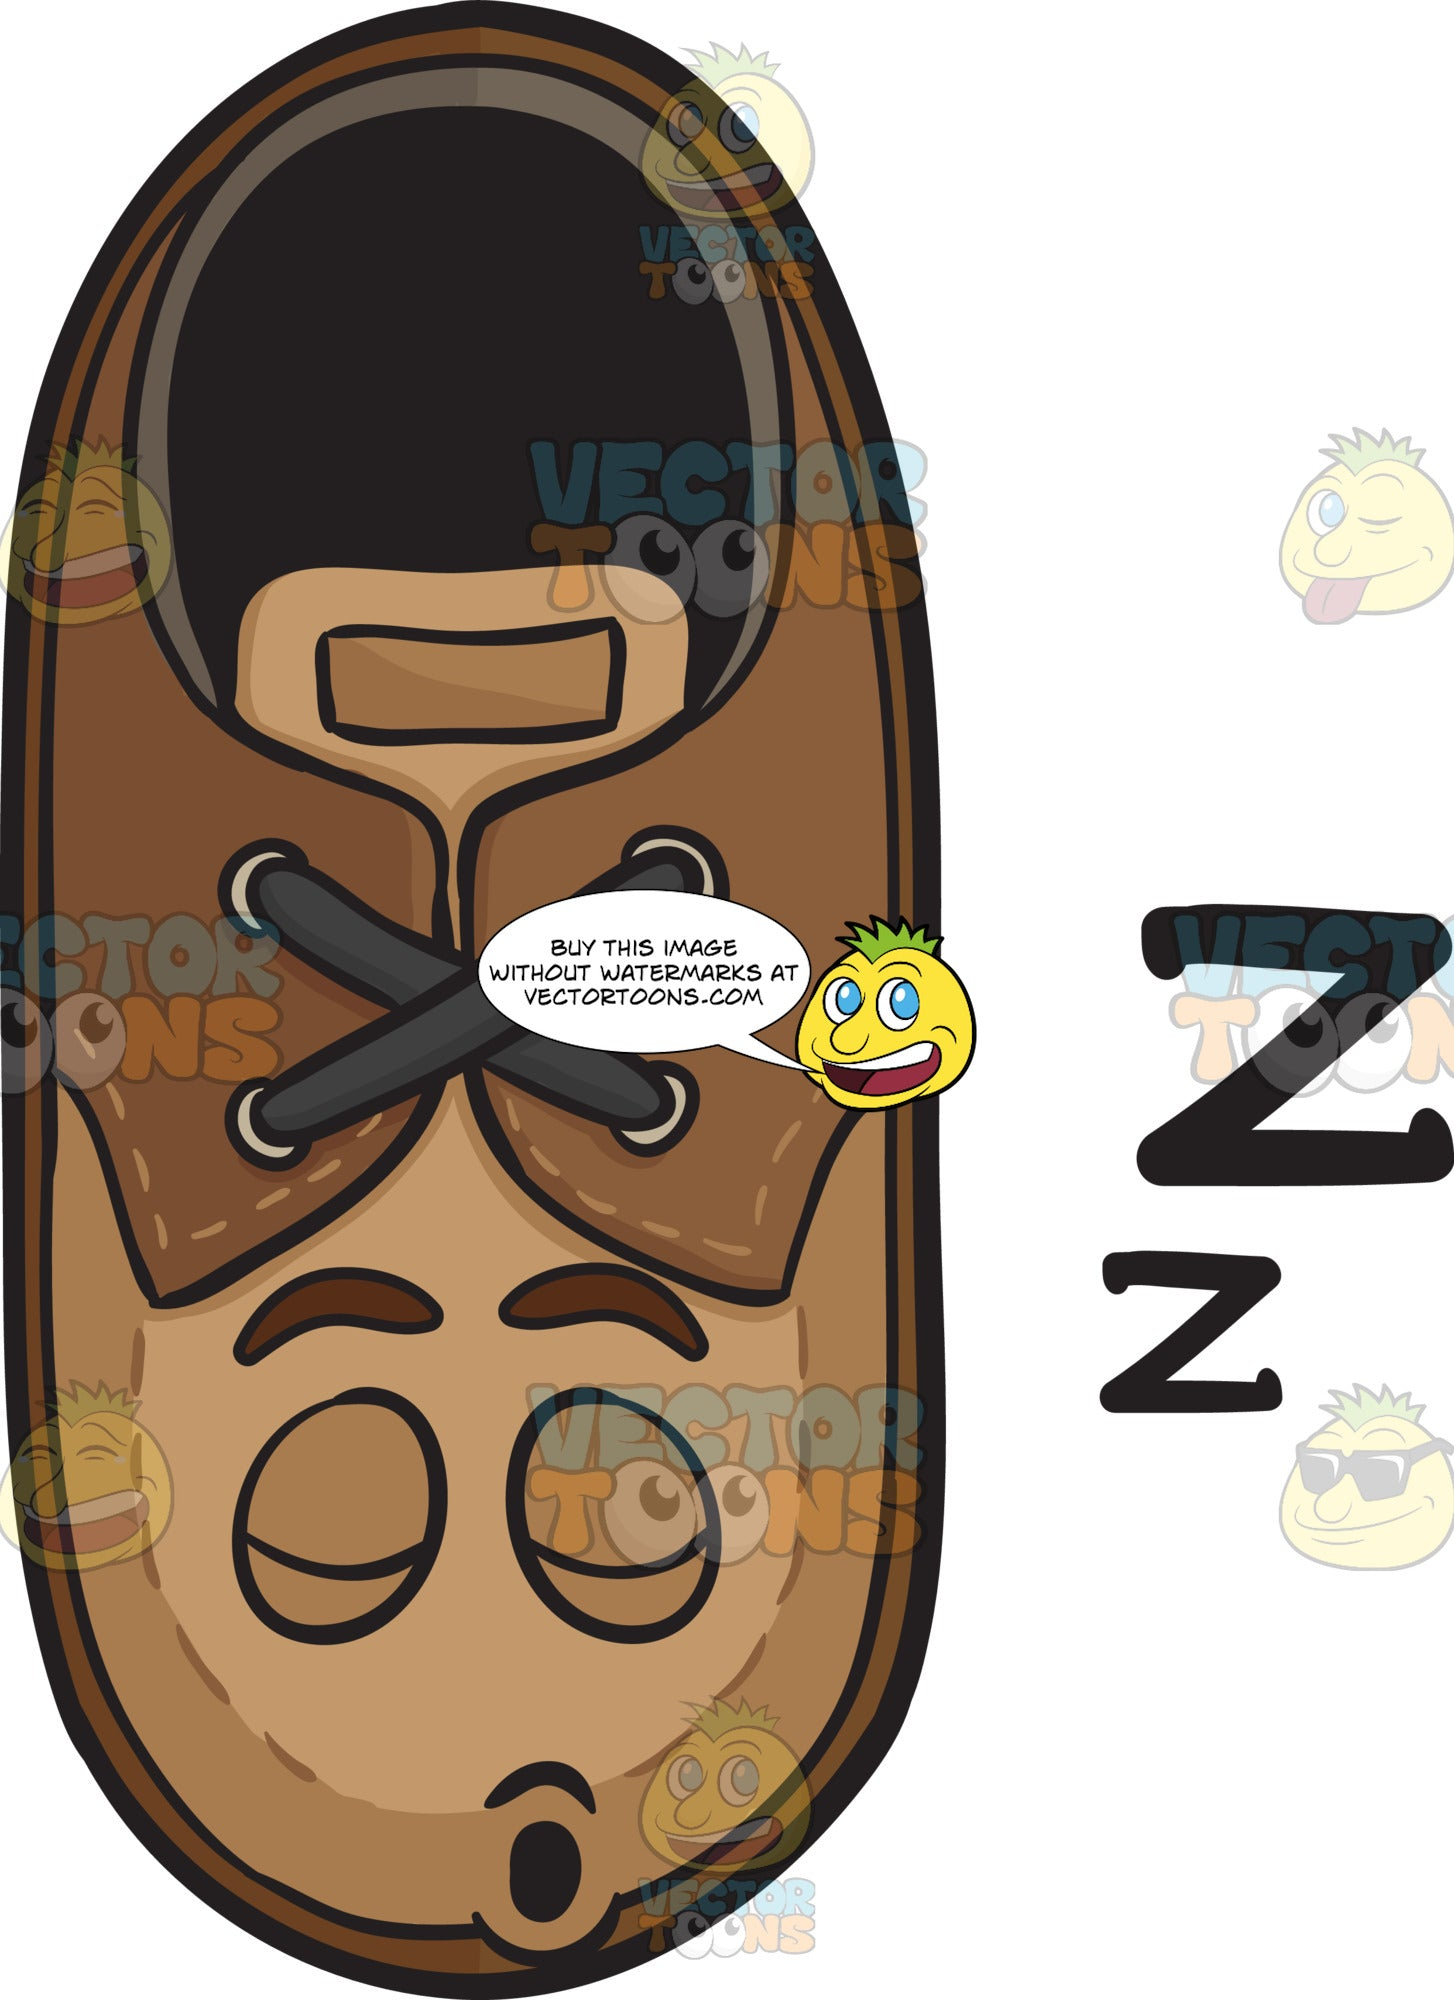 Snoring Brown Shoe Drifting Zs Emoji